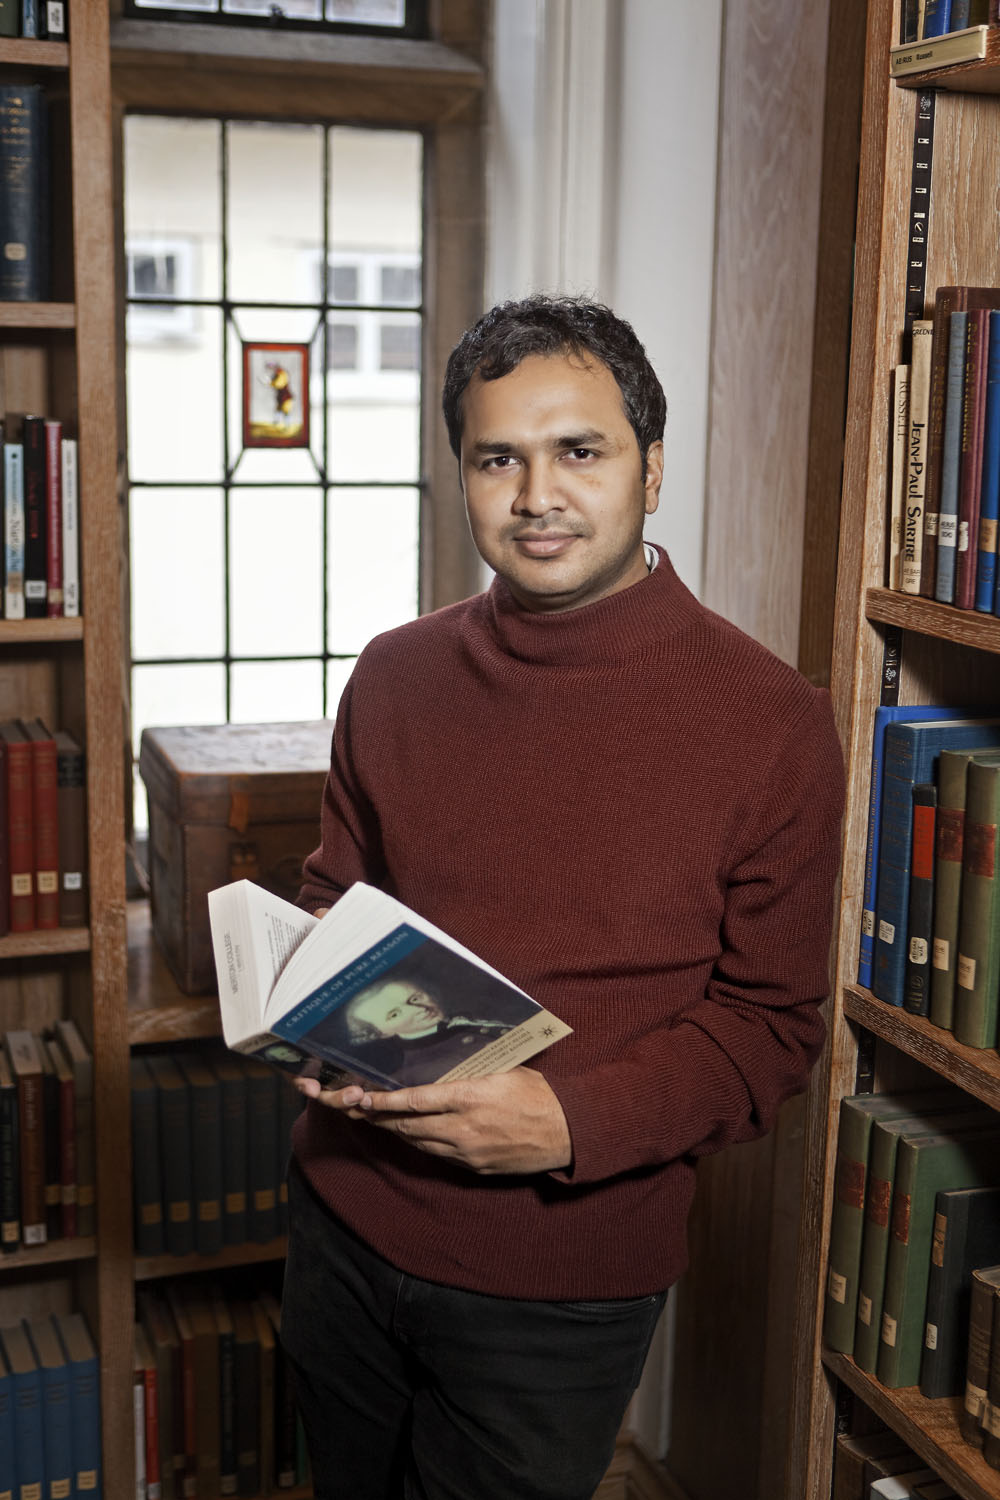 Adil Hossein at Merton College, University of Oxford